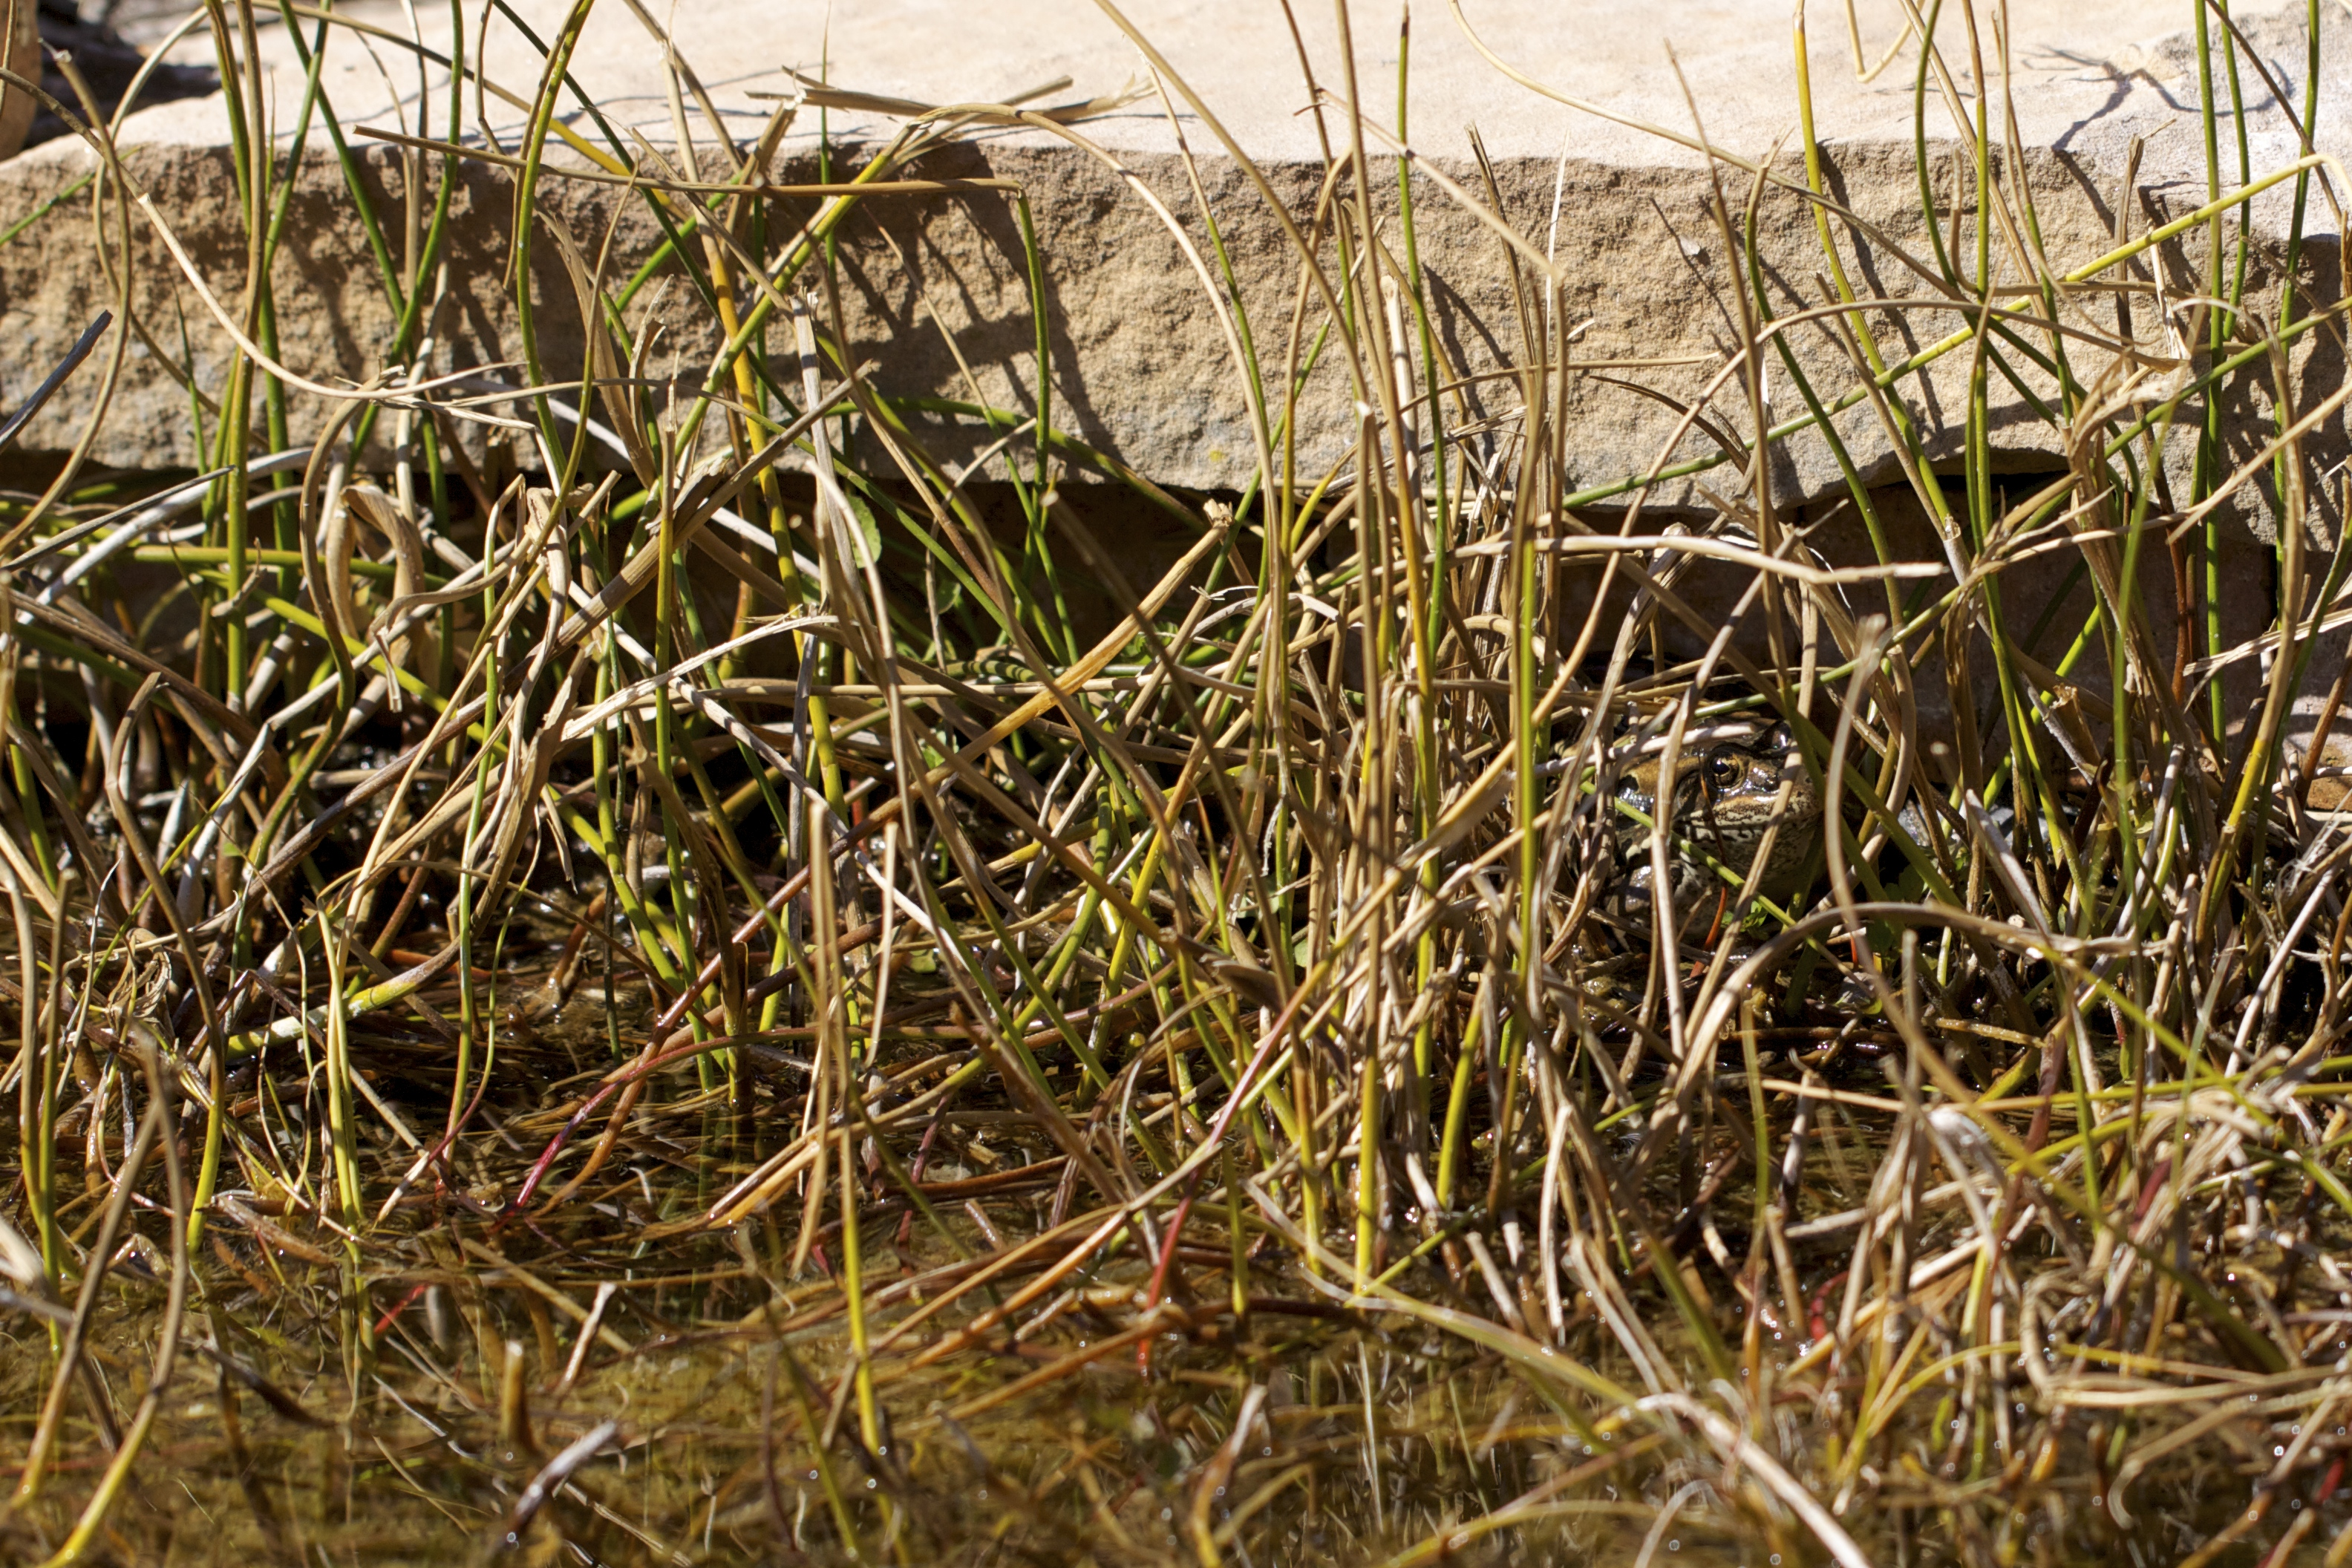 The resident leopard frog hides at the edge of the pond. I first spooked her weeks ago finger-combing the rushes, and still she sits there every day.